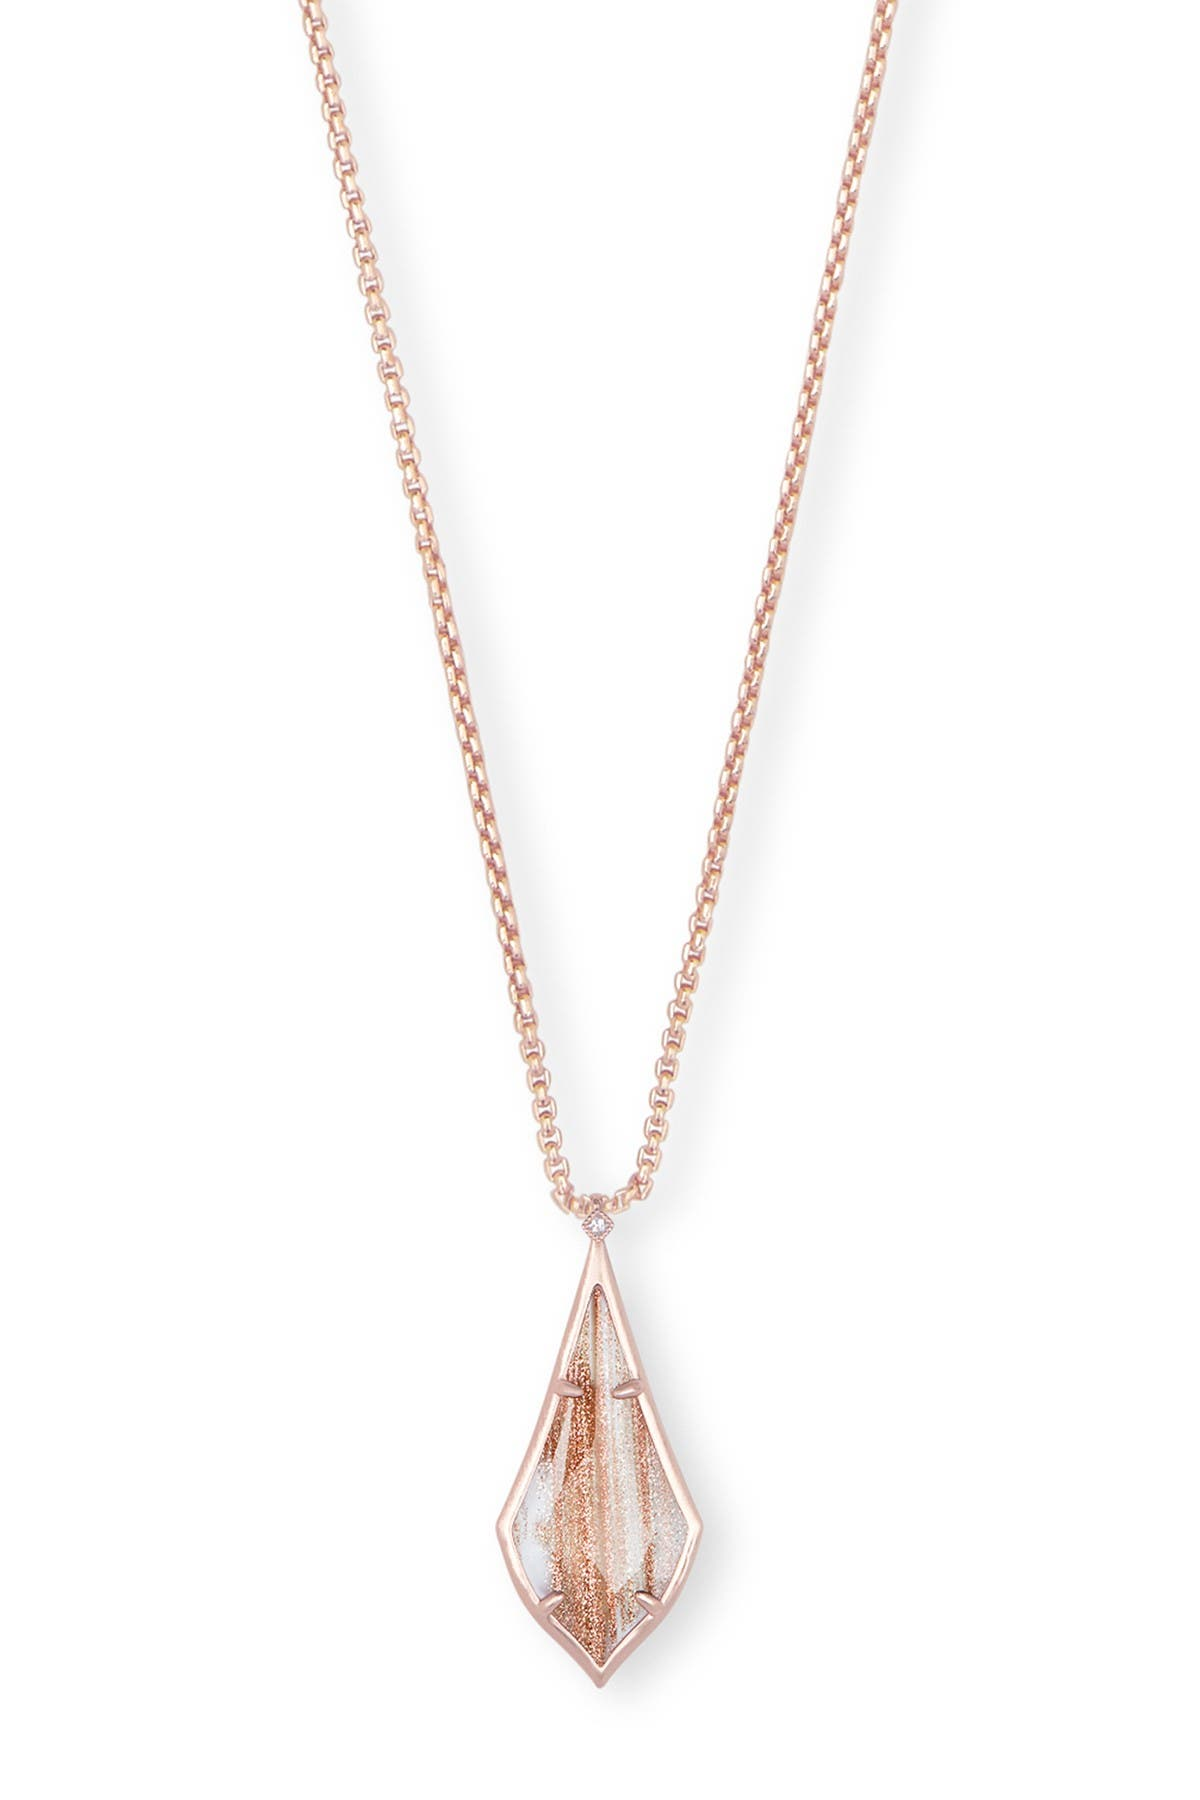 Image of Kendra Scott Olivia Long Pendant Necklace